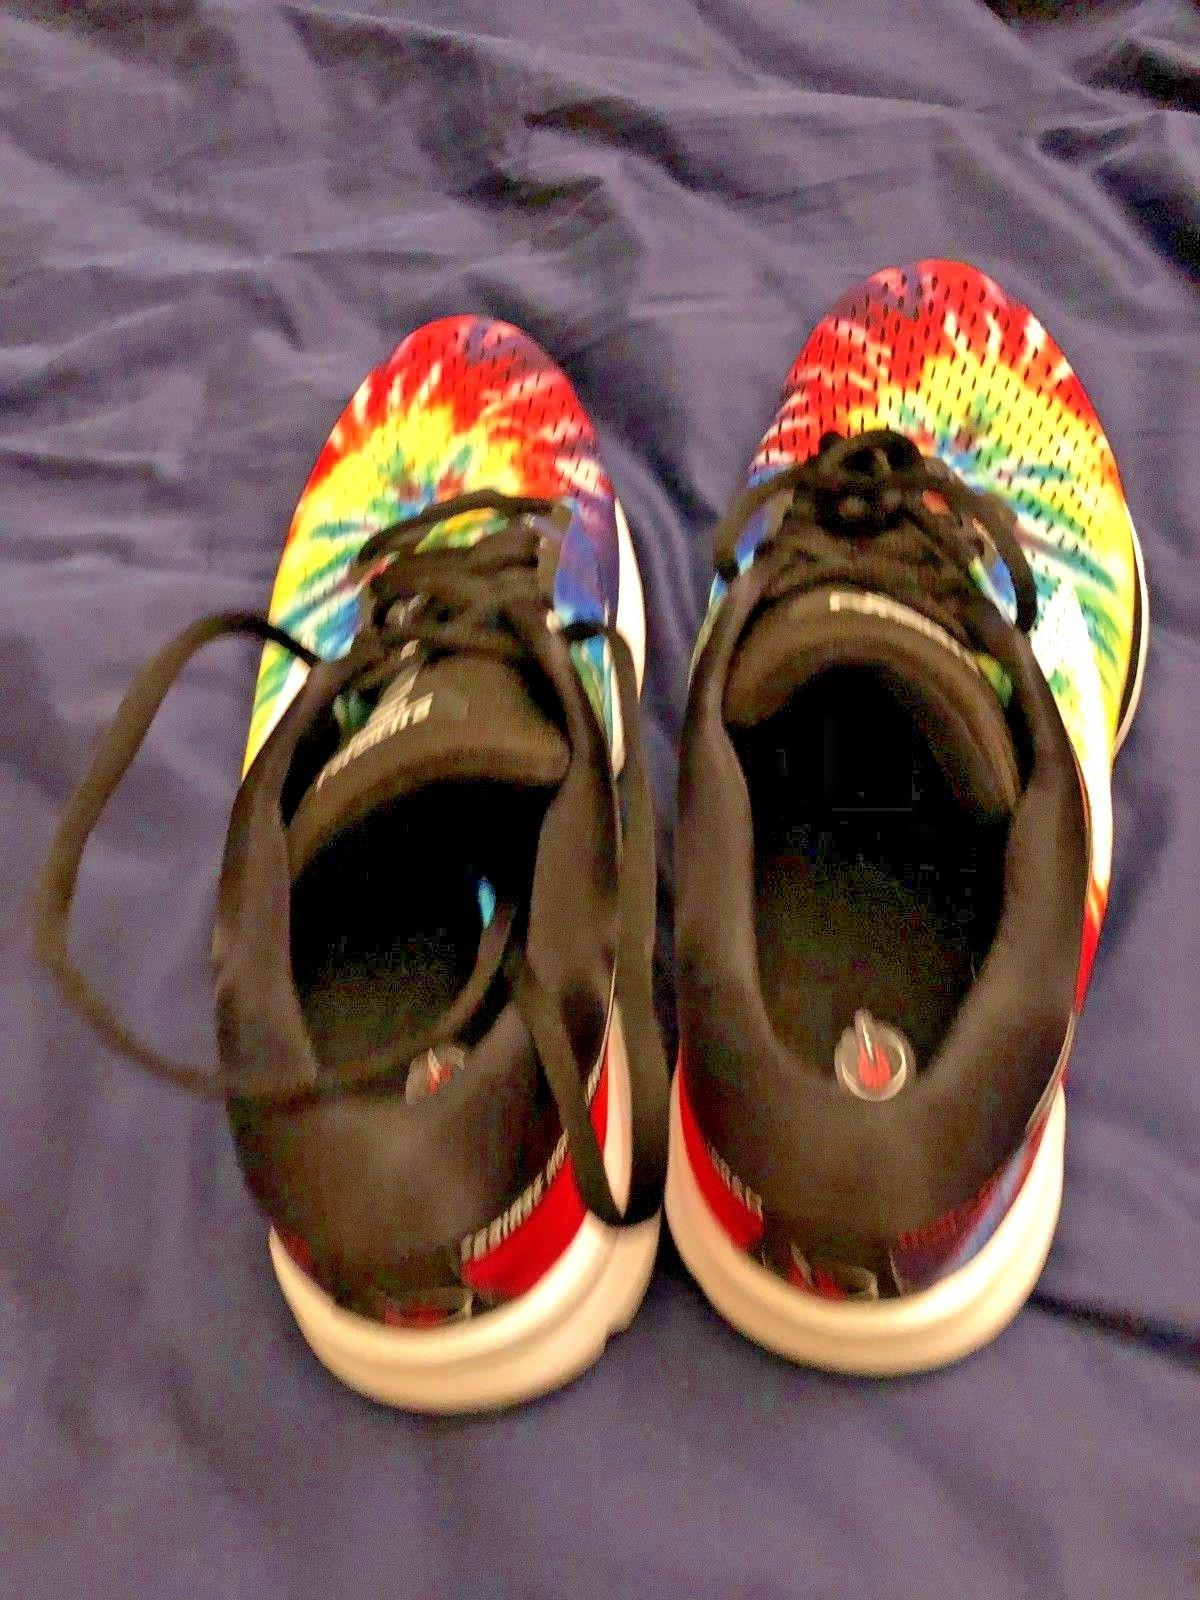 BROOKS TIE-DYE SHOES,NIB,DS,#120266 1B 964,Full Size Run